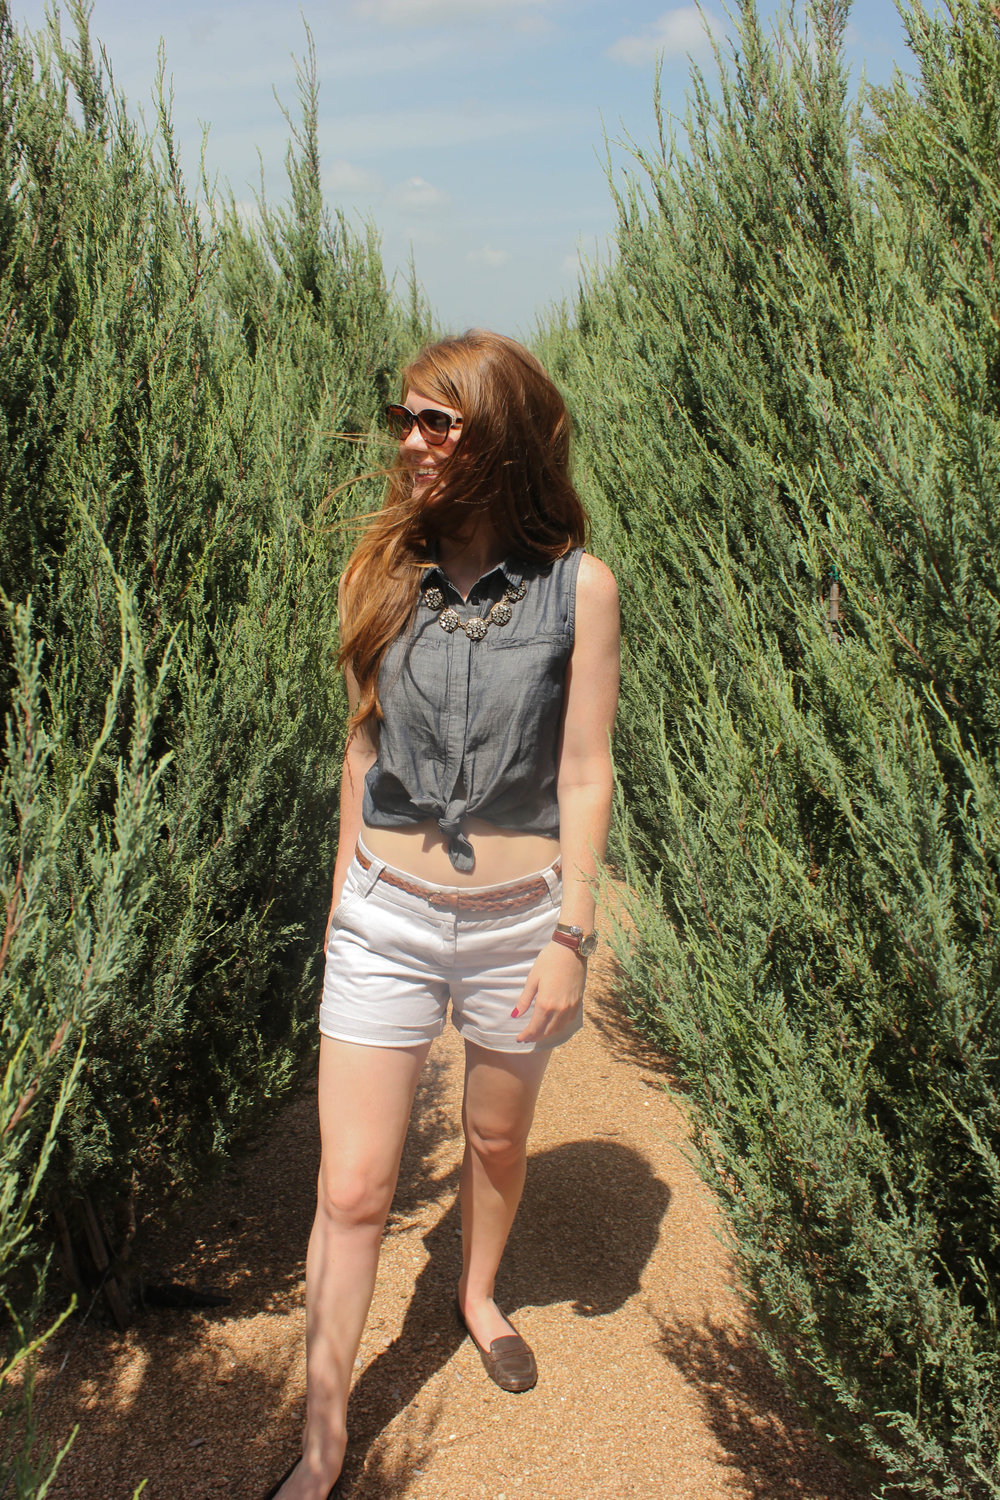 what to wear wine tasting, how to dress when going wine tasting, wine tasting tips, napa valley, wine tasting in napa valley, sonoma, fredericksburg, texas